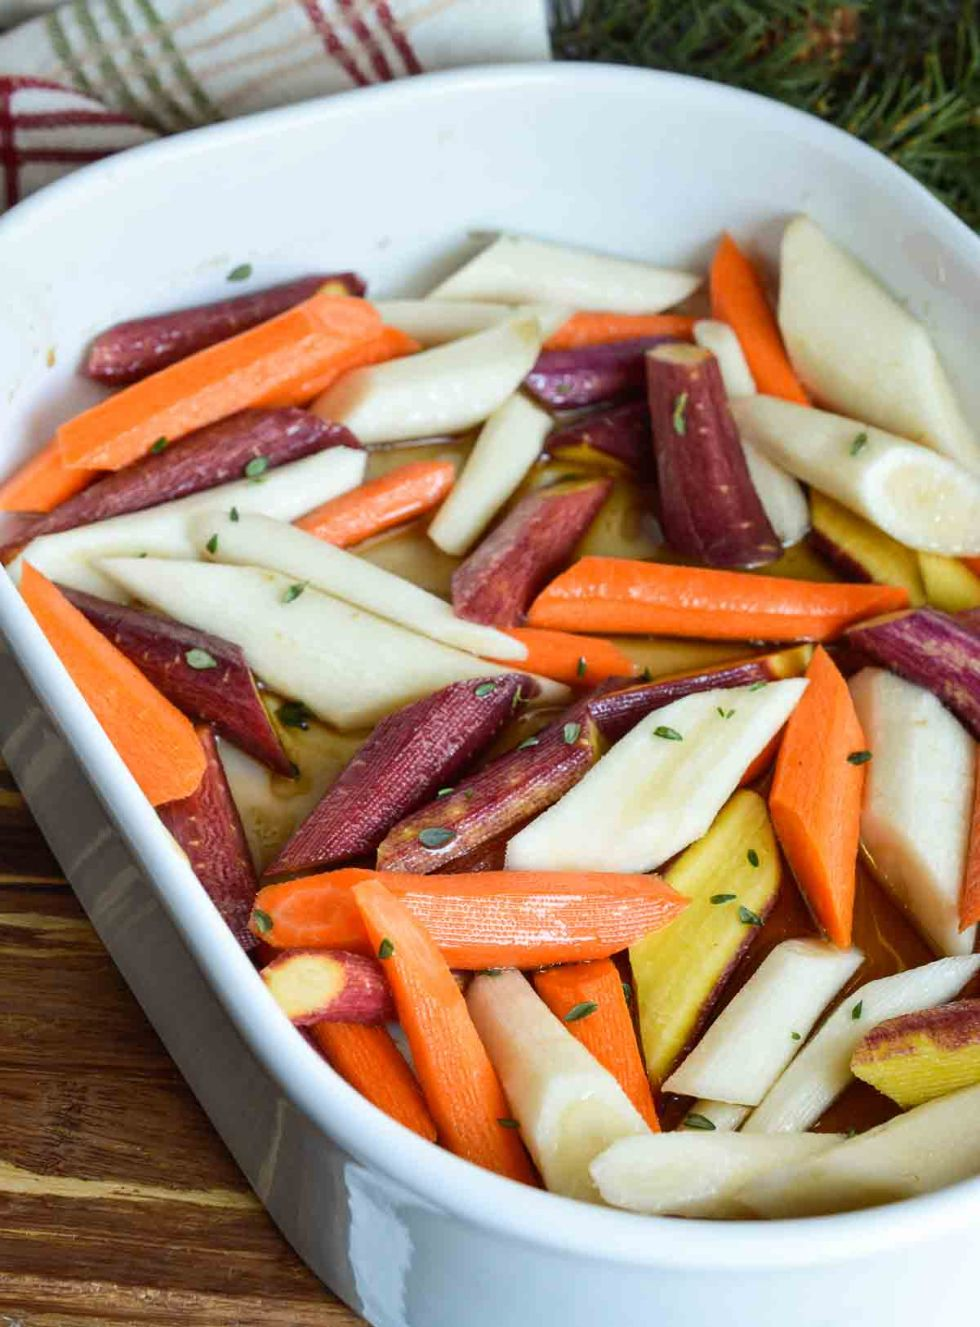 Enjoy your favorite holiday side dish without the guilt. These Healthy Candied Carrots are roasted with olive oil, maple syrup and thyme. Sweet and salty roasted carrots will be a new family favorite! Vegan, Vegetarian